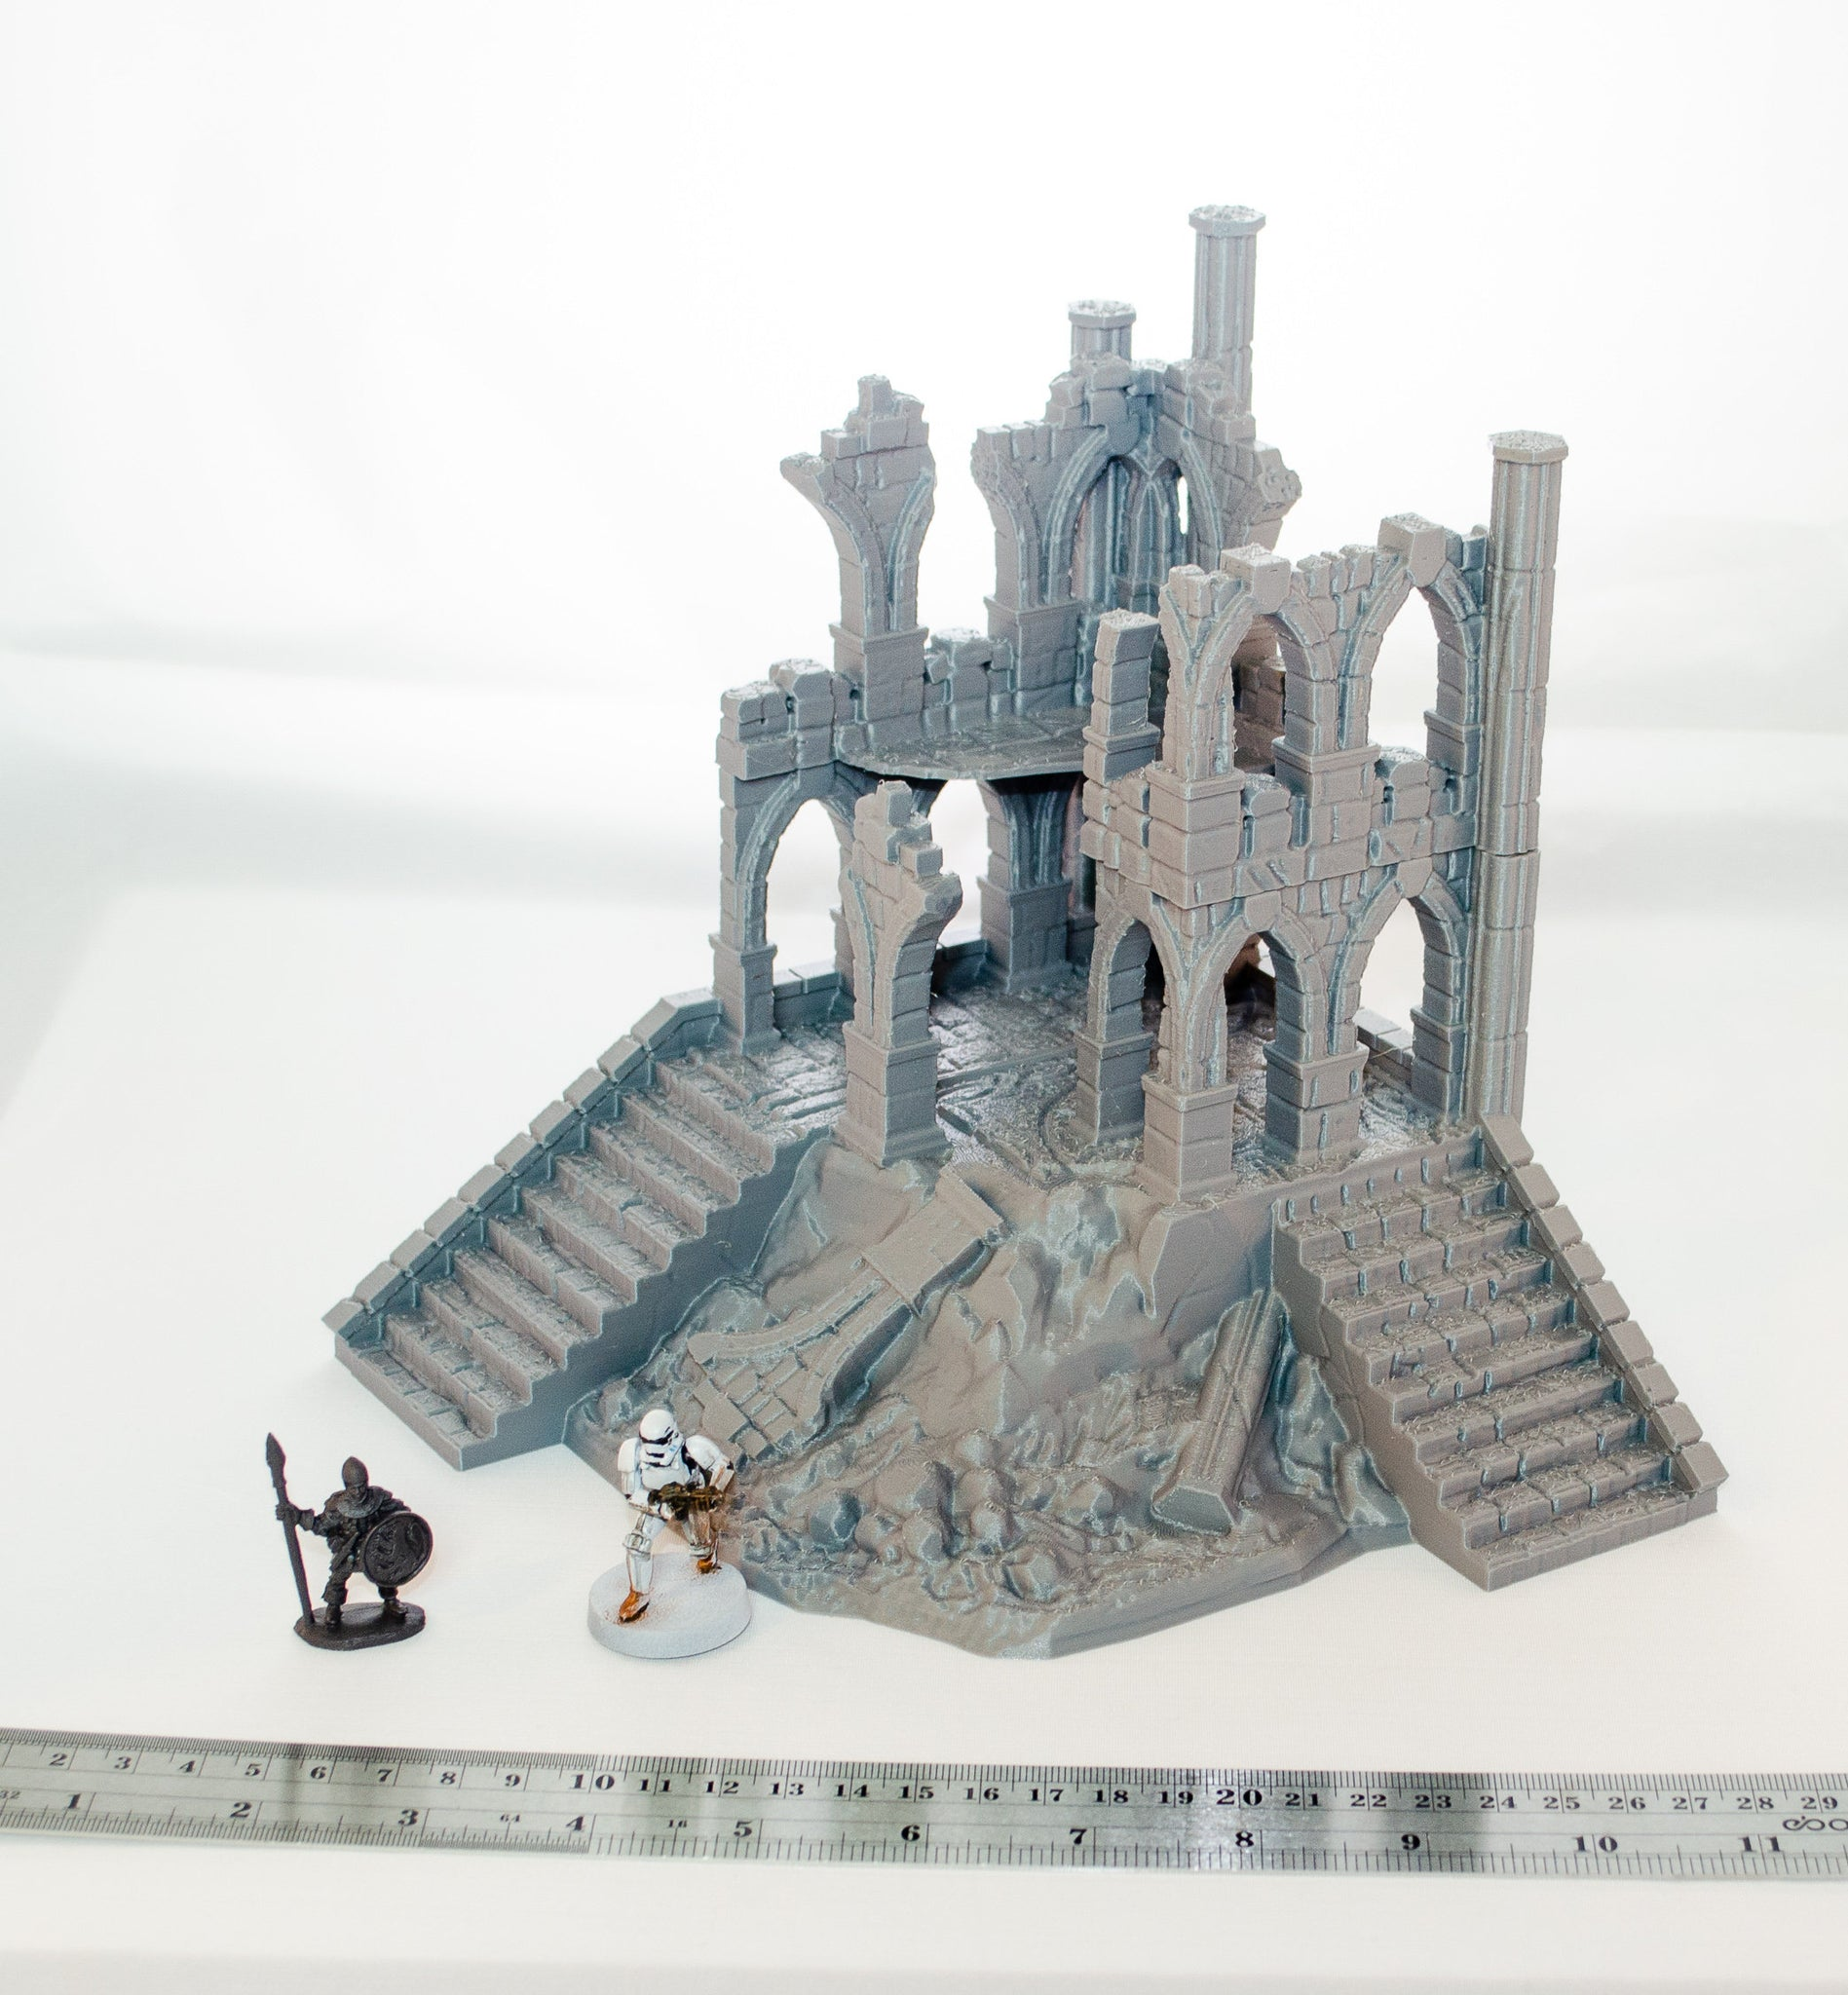 Stormguard - Ruined Tallsworth Hold 28mm 32mm Wargaming Terrain D&D